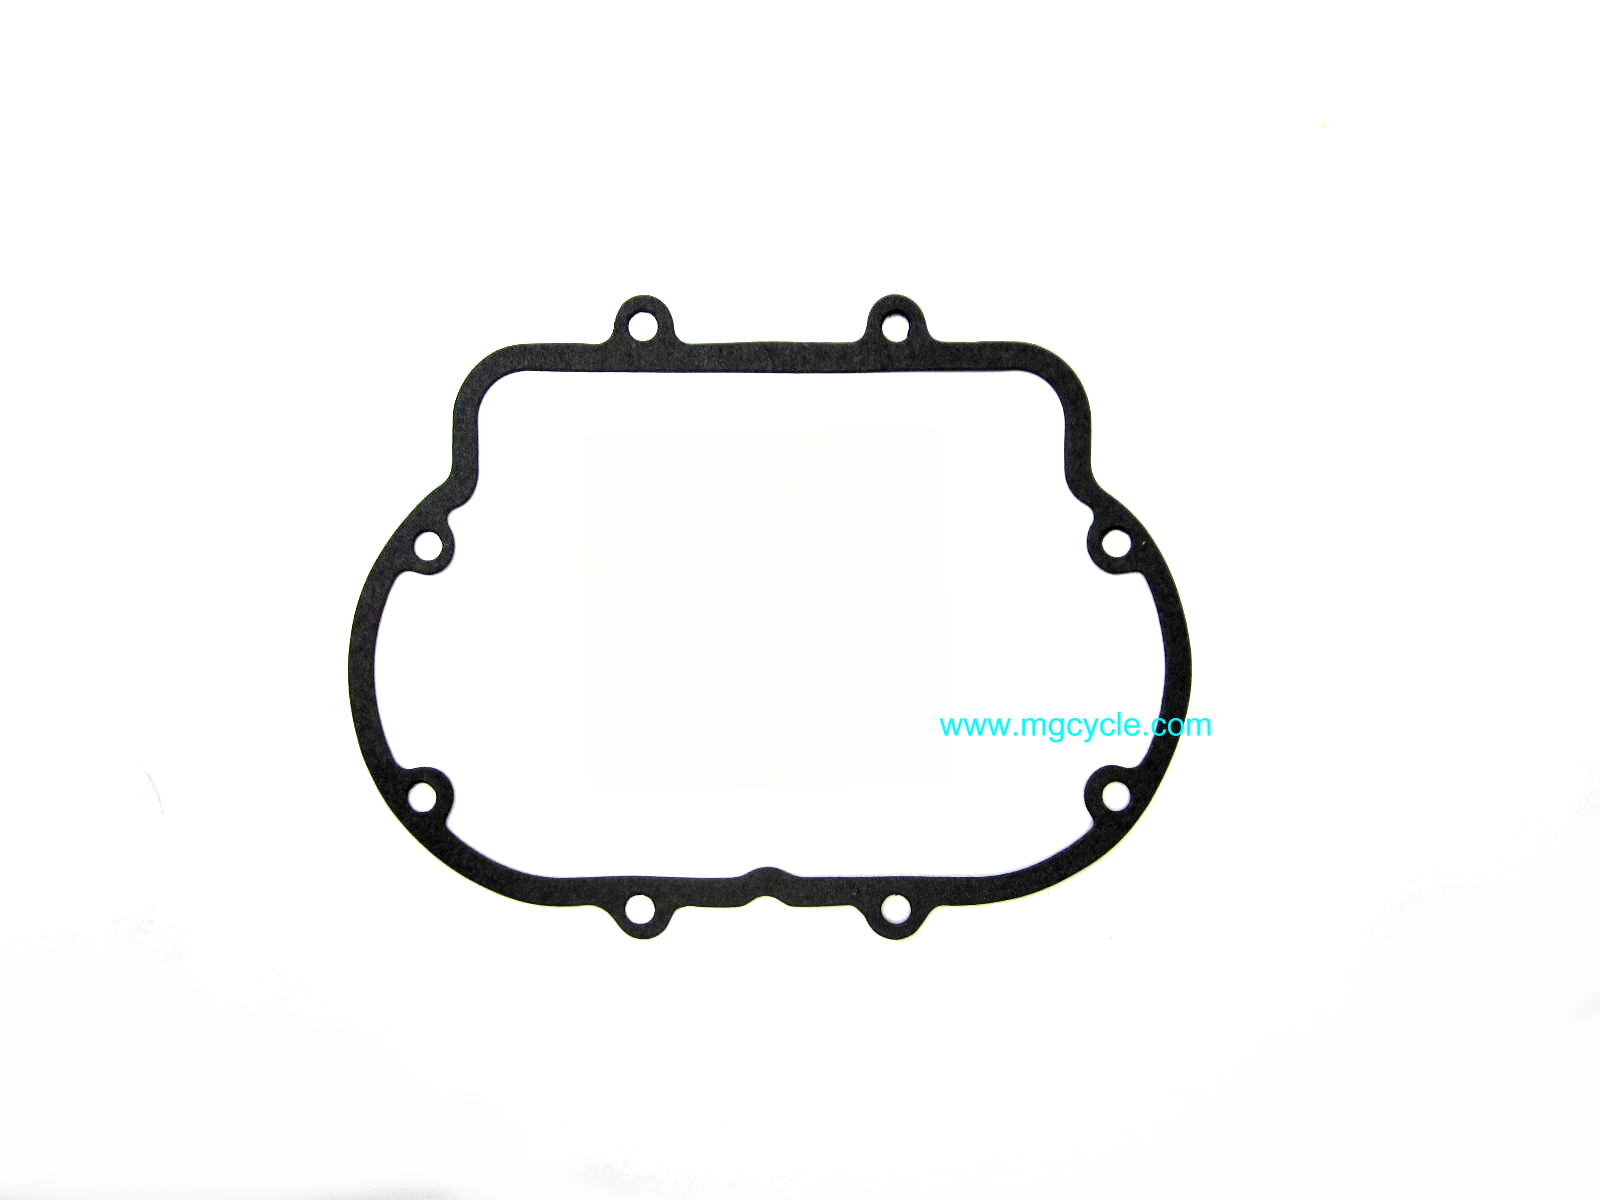 Valve cover gasket, round fin big twins GU12023700